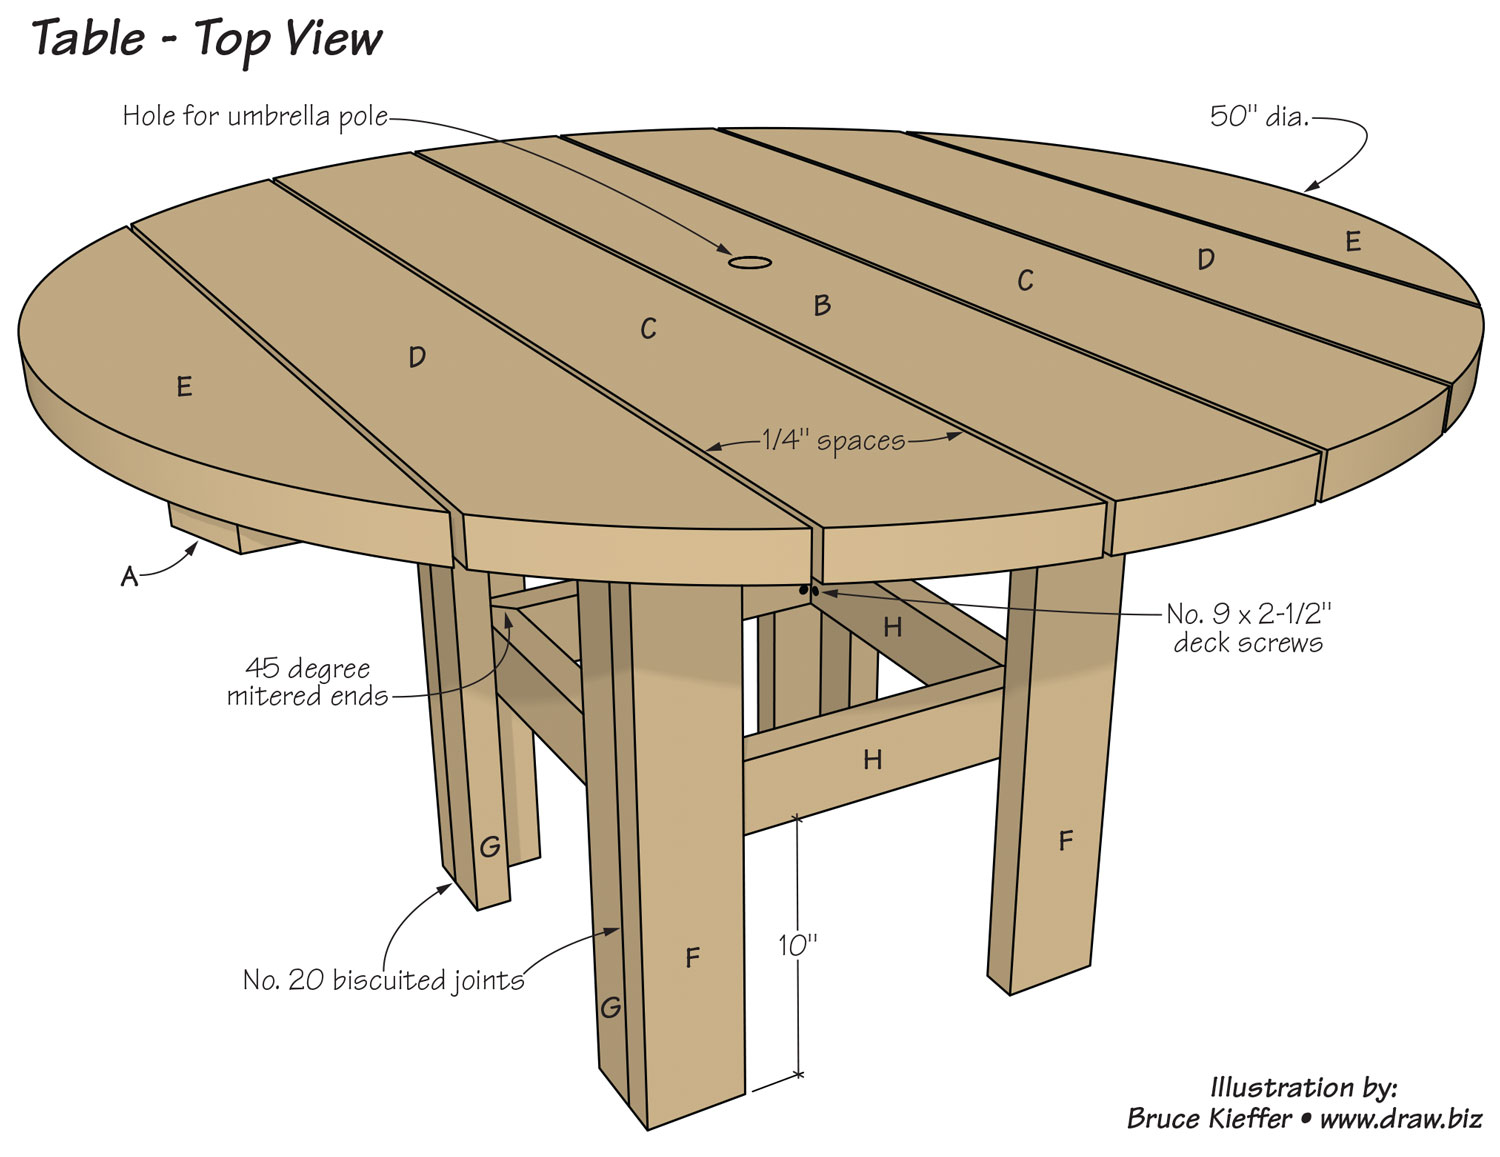 DIY Outdoor Table Plans : step1atabletopview from staging.wwgoa.tnmarketing.net size 1500 x 1157 jpeg 159kB